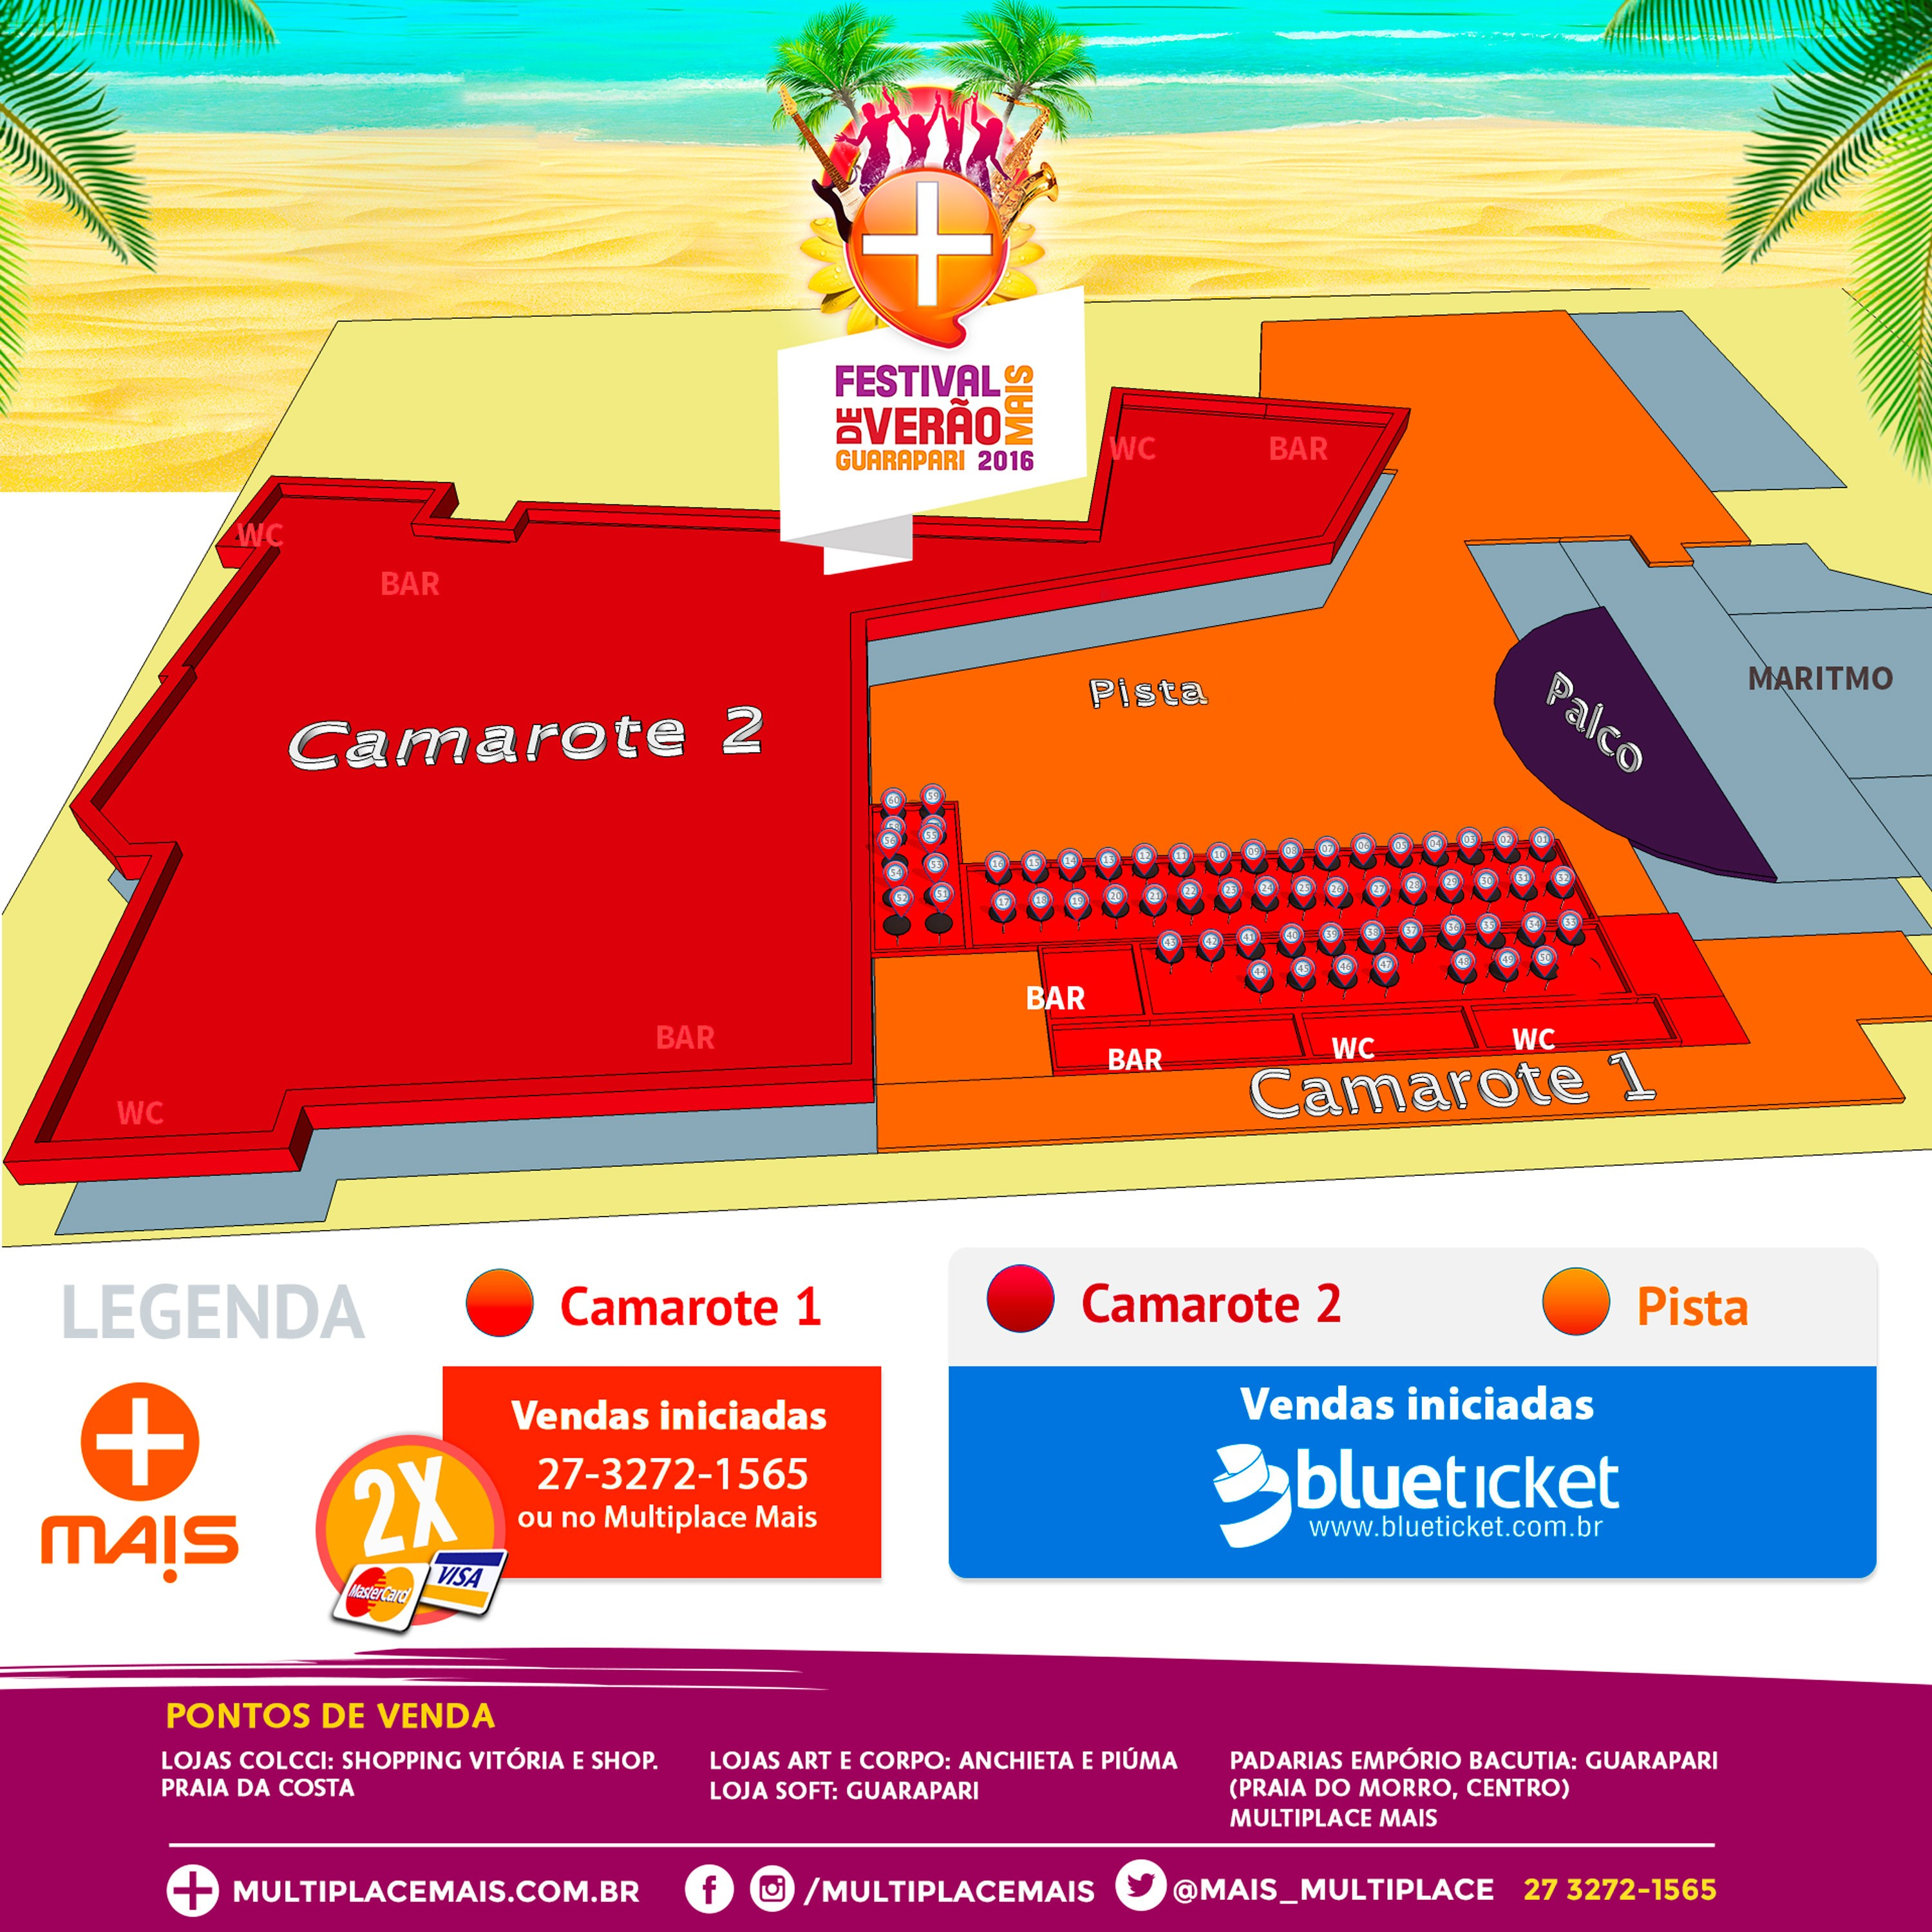 festivaldeverao-mapageral-multiplacemais